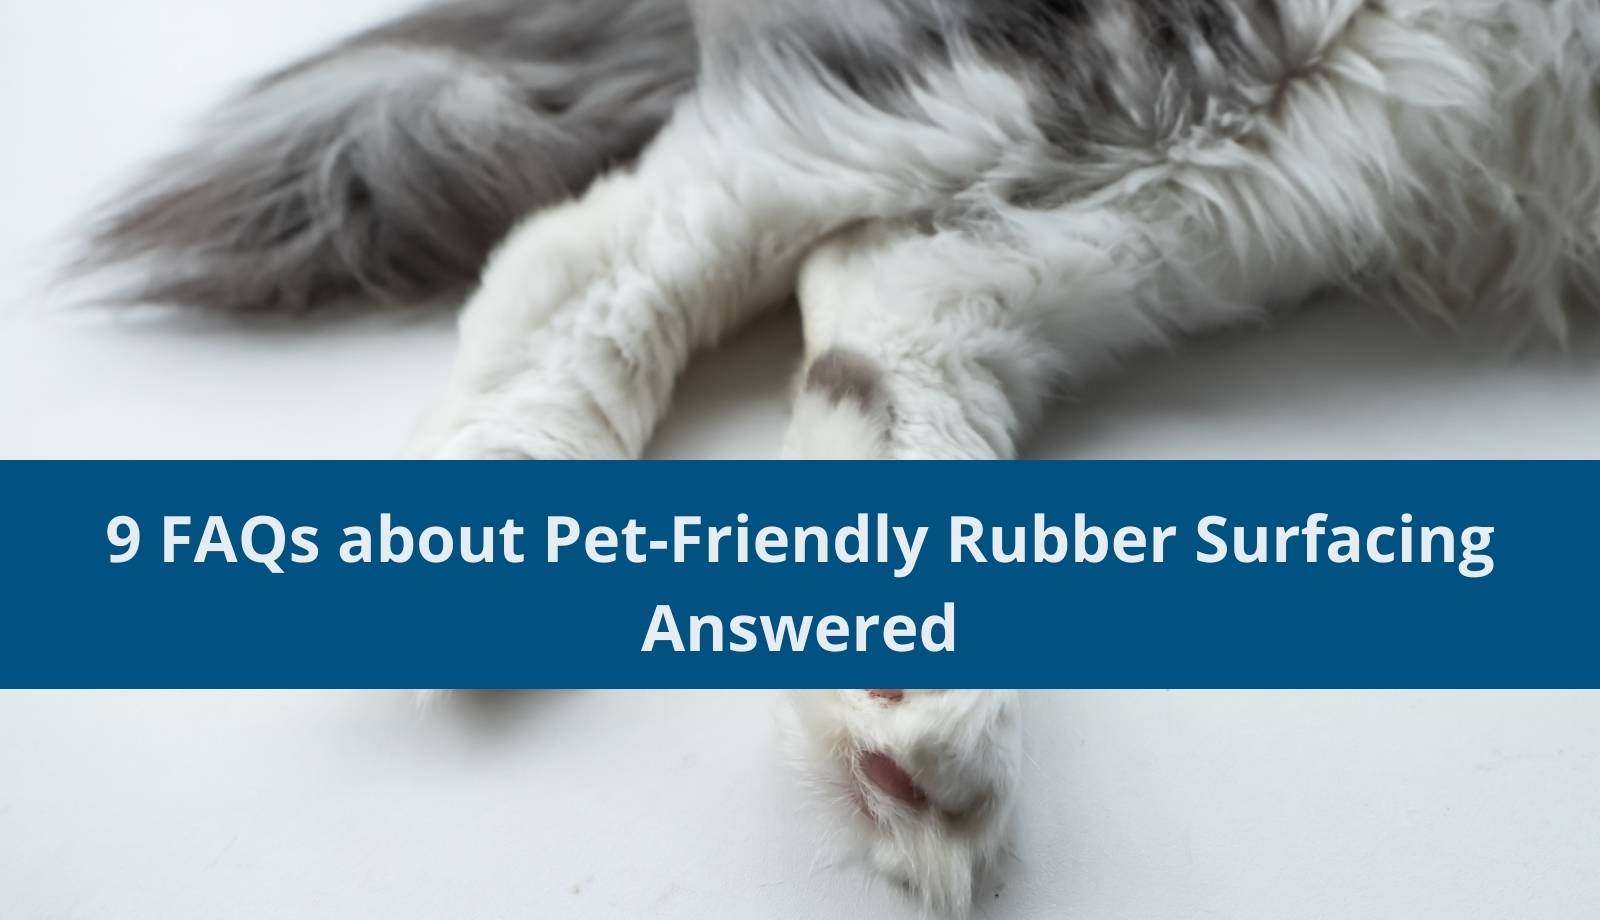 9 FAQs about Pet-Friendly Rubber Surfacing Answered